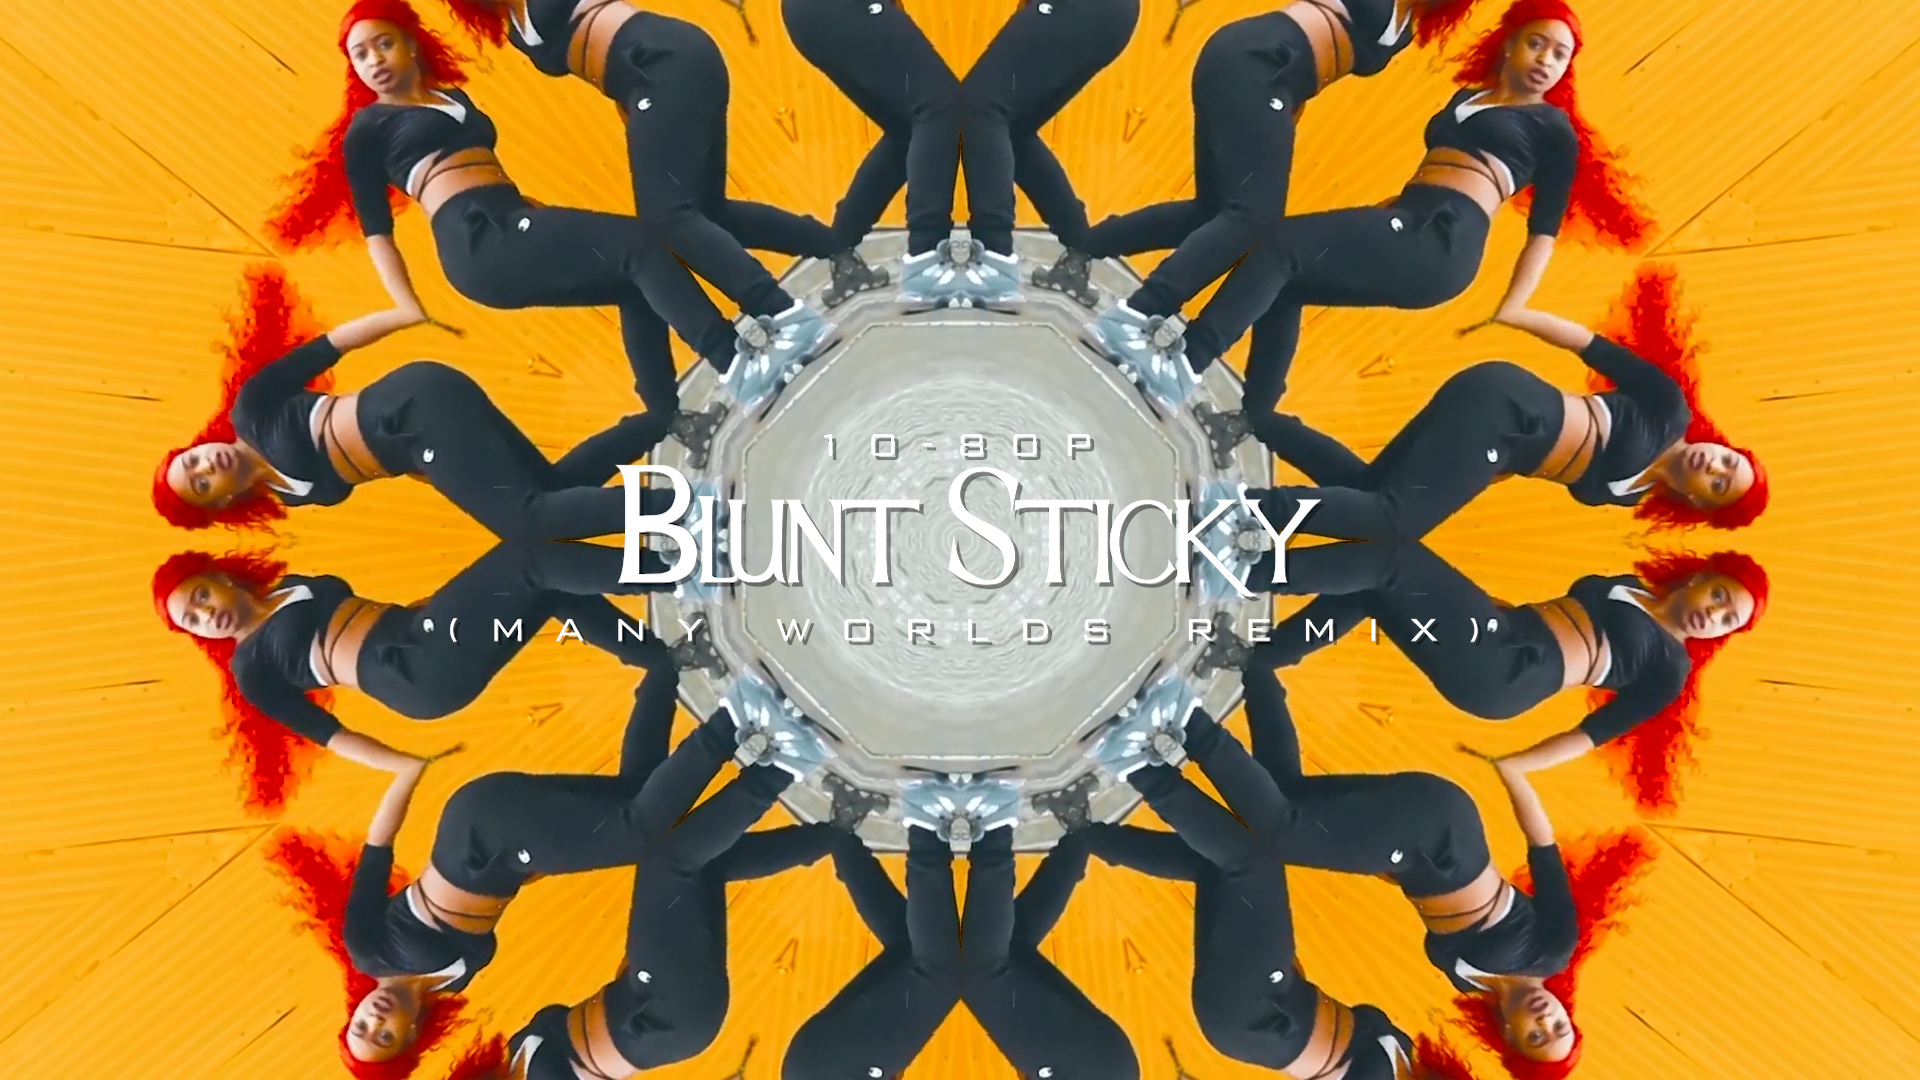 10-80P Blunt Sticky (many worlds remix)